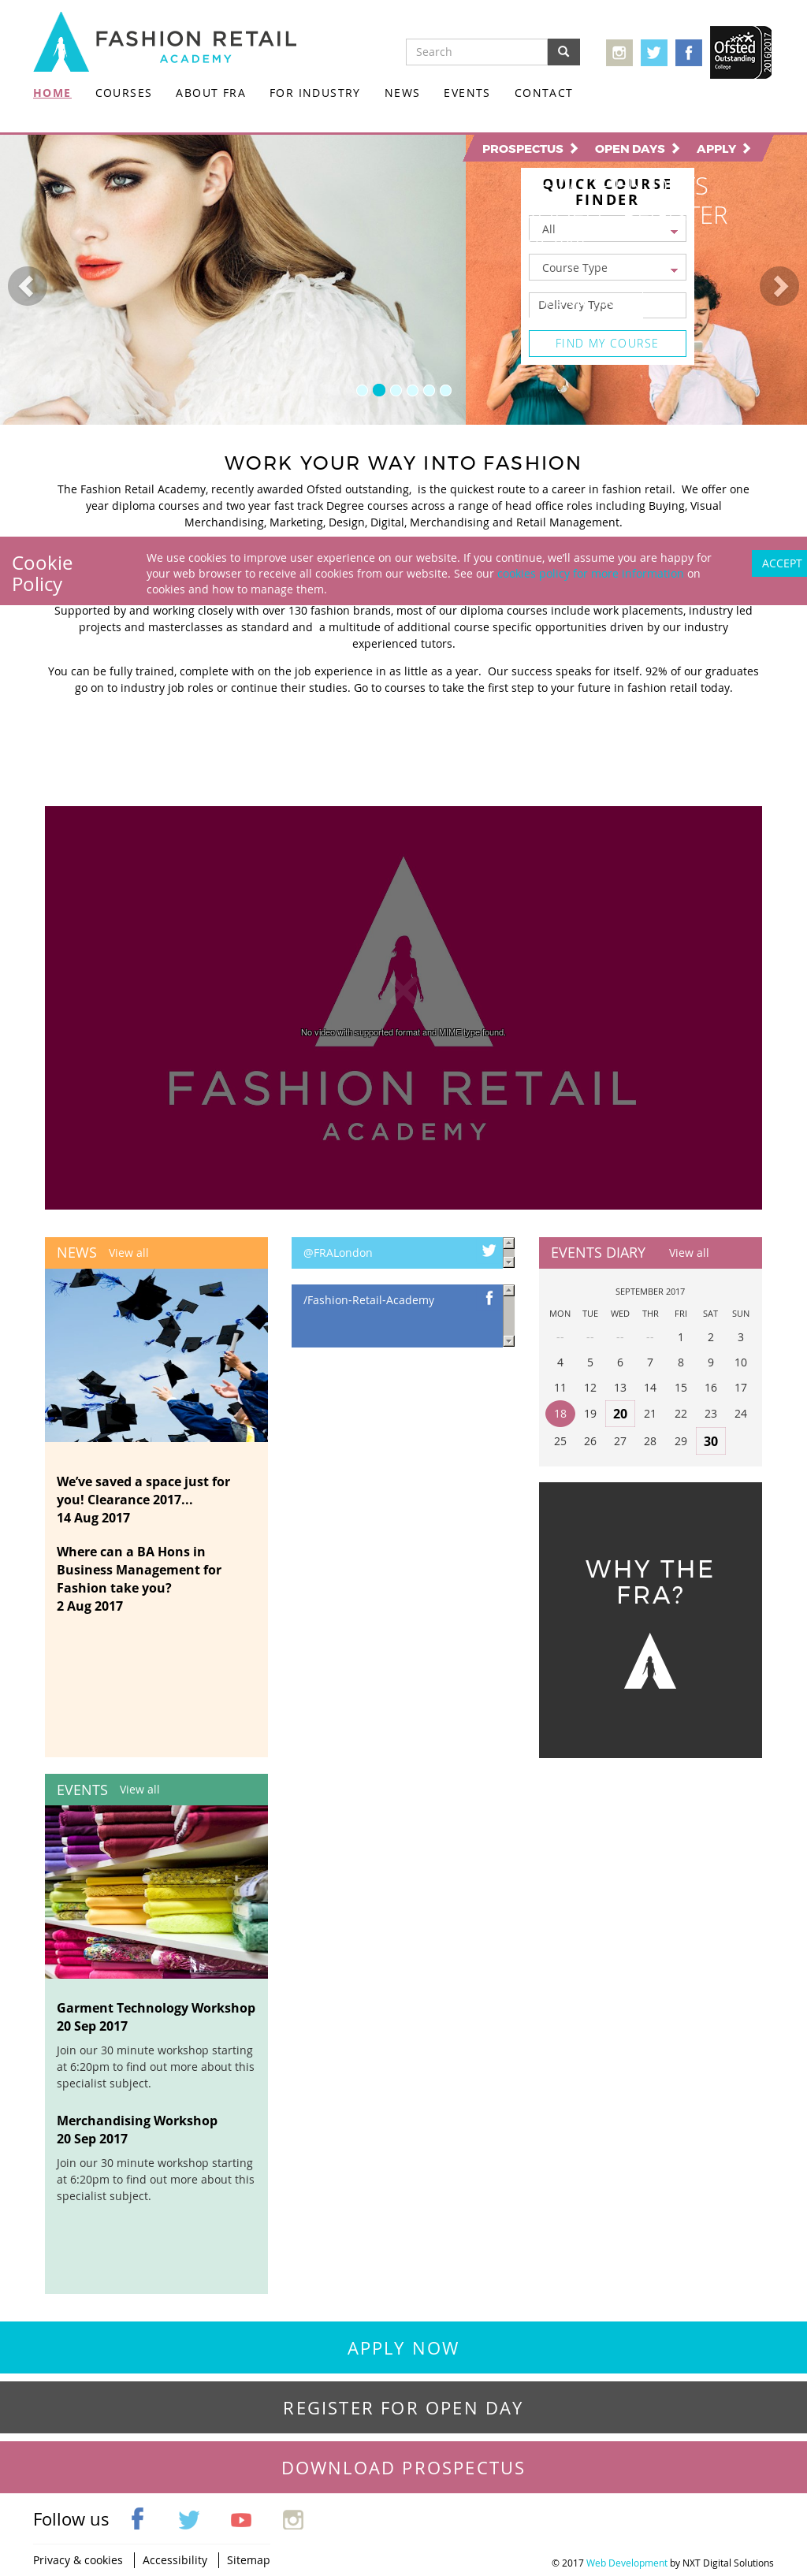 foto Fashion Retail Academy rated outstanding' by Ofsted modern collection